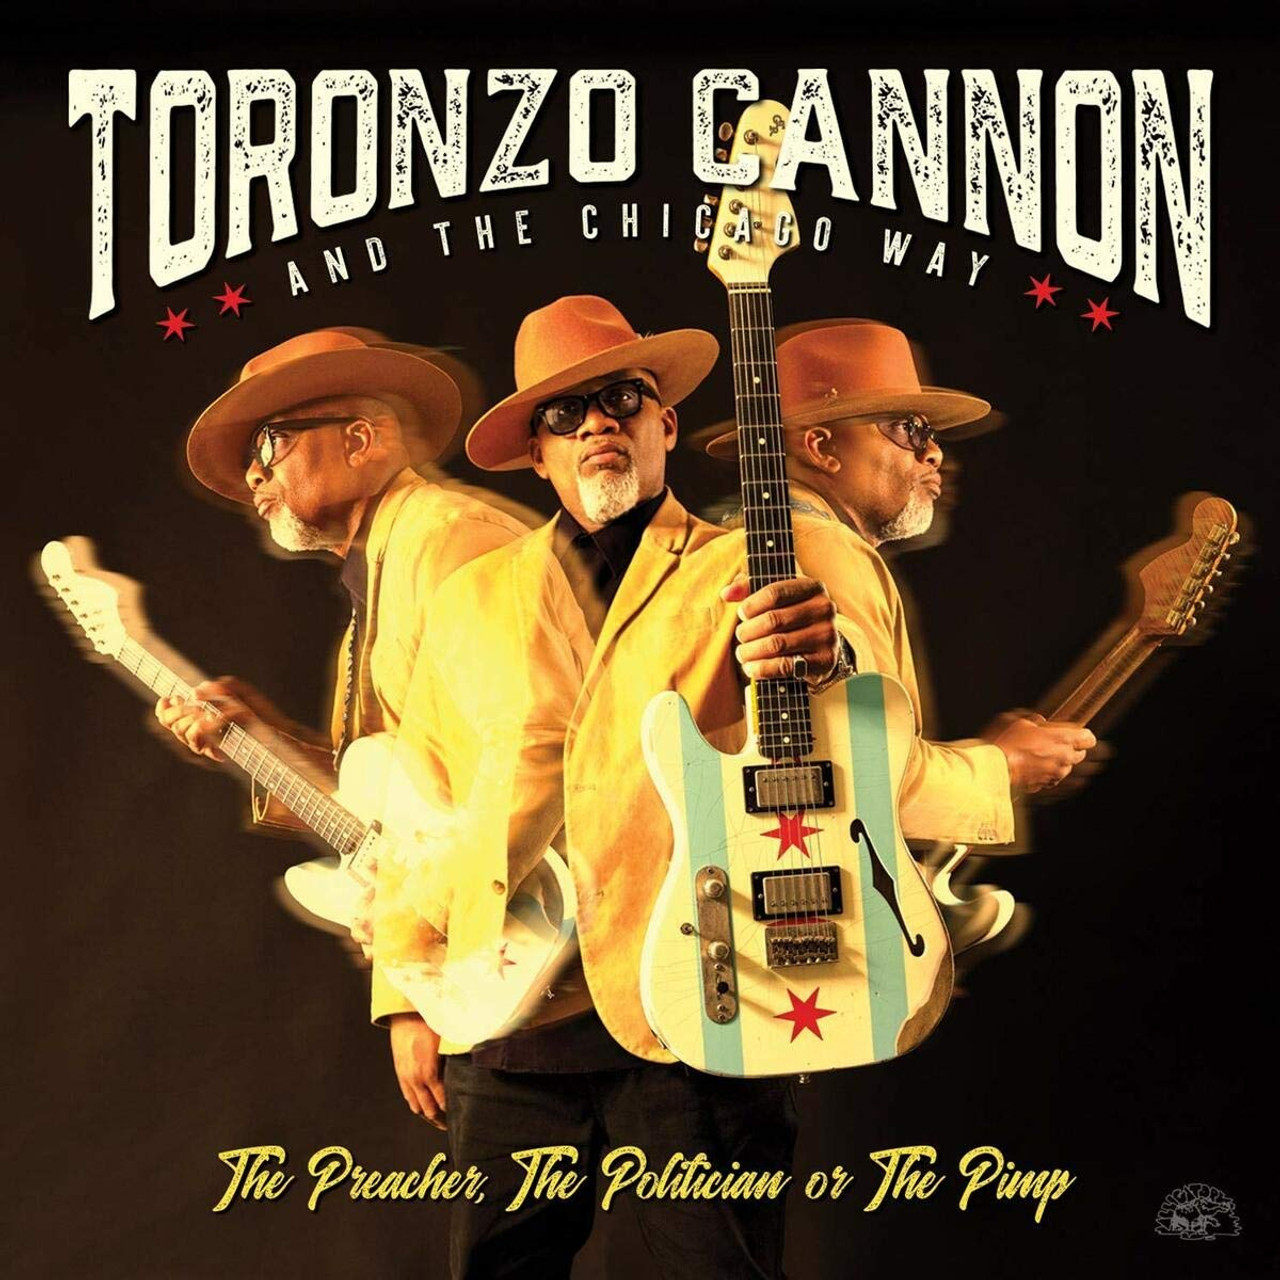 TORONZO CANNON - The Preacher, The Politician Or The Pimp